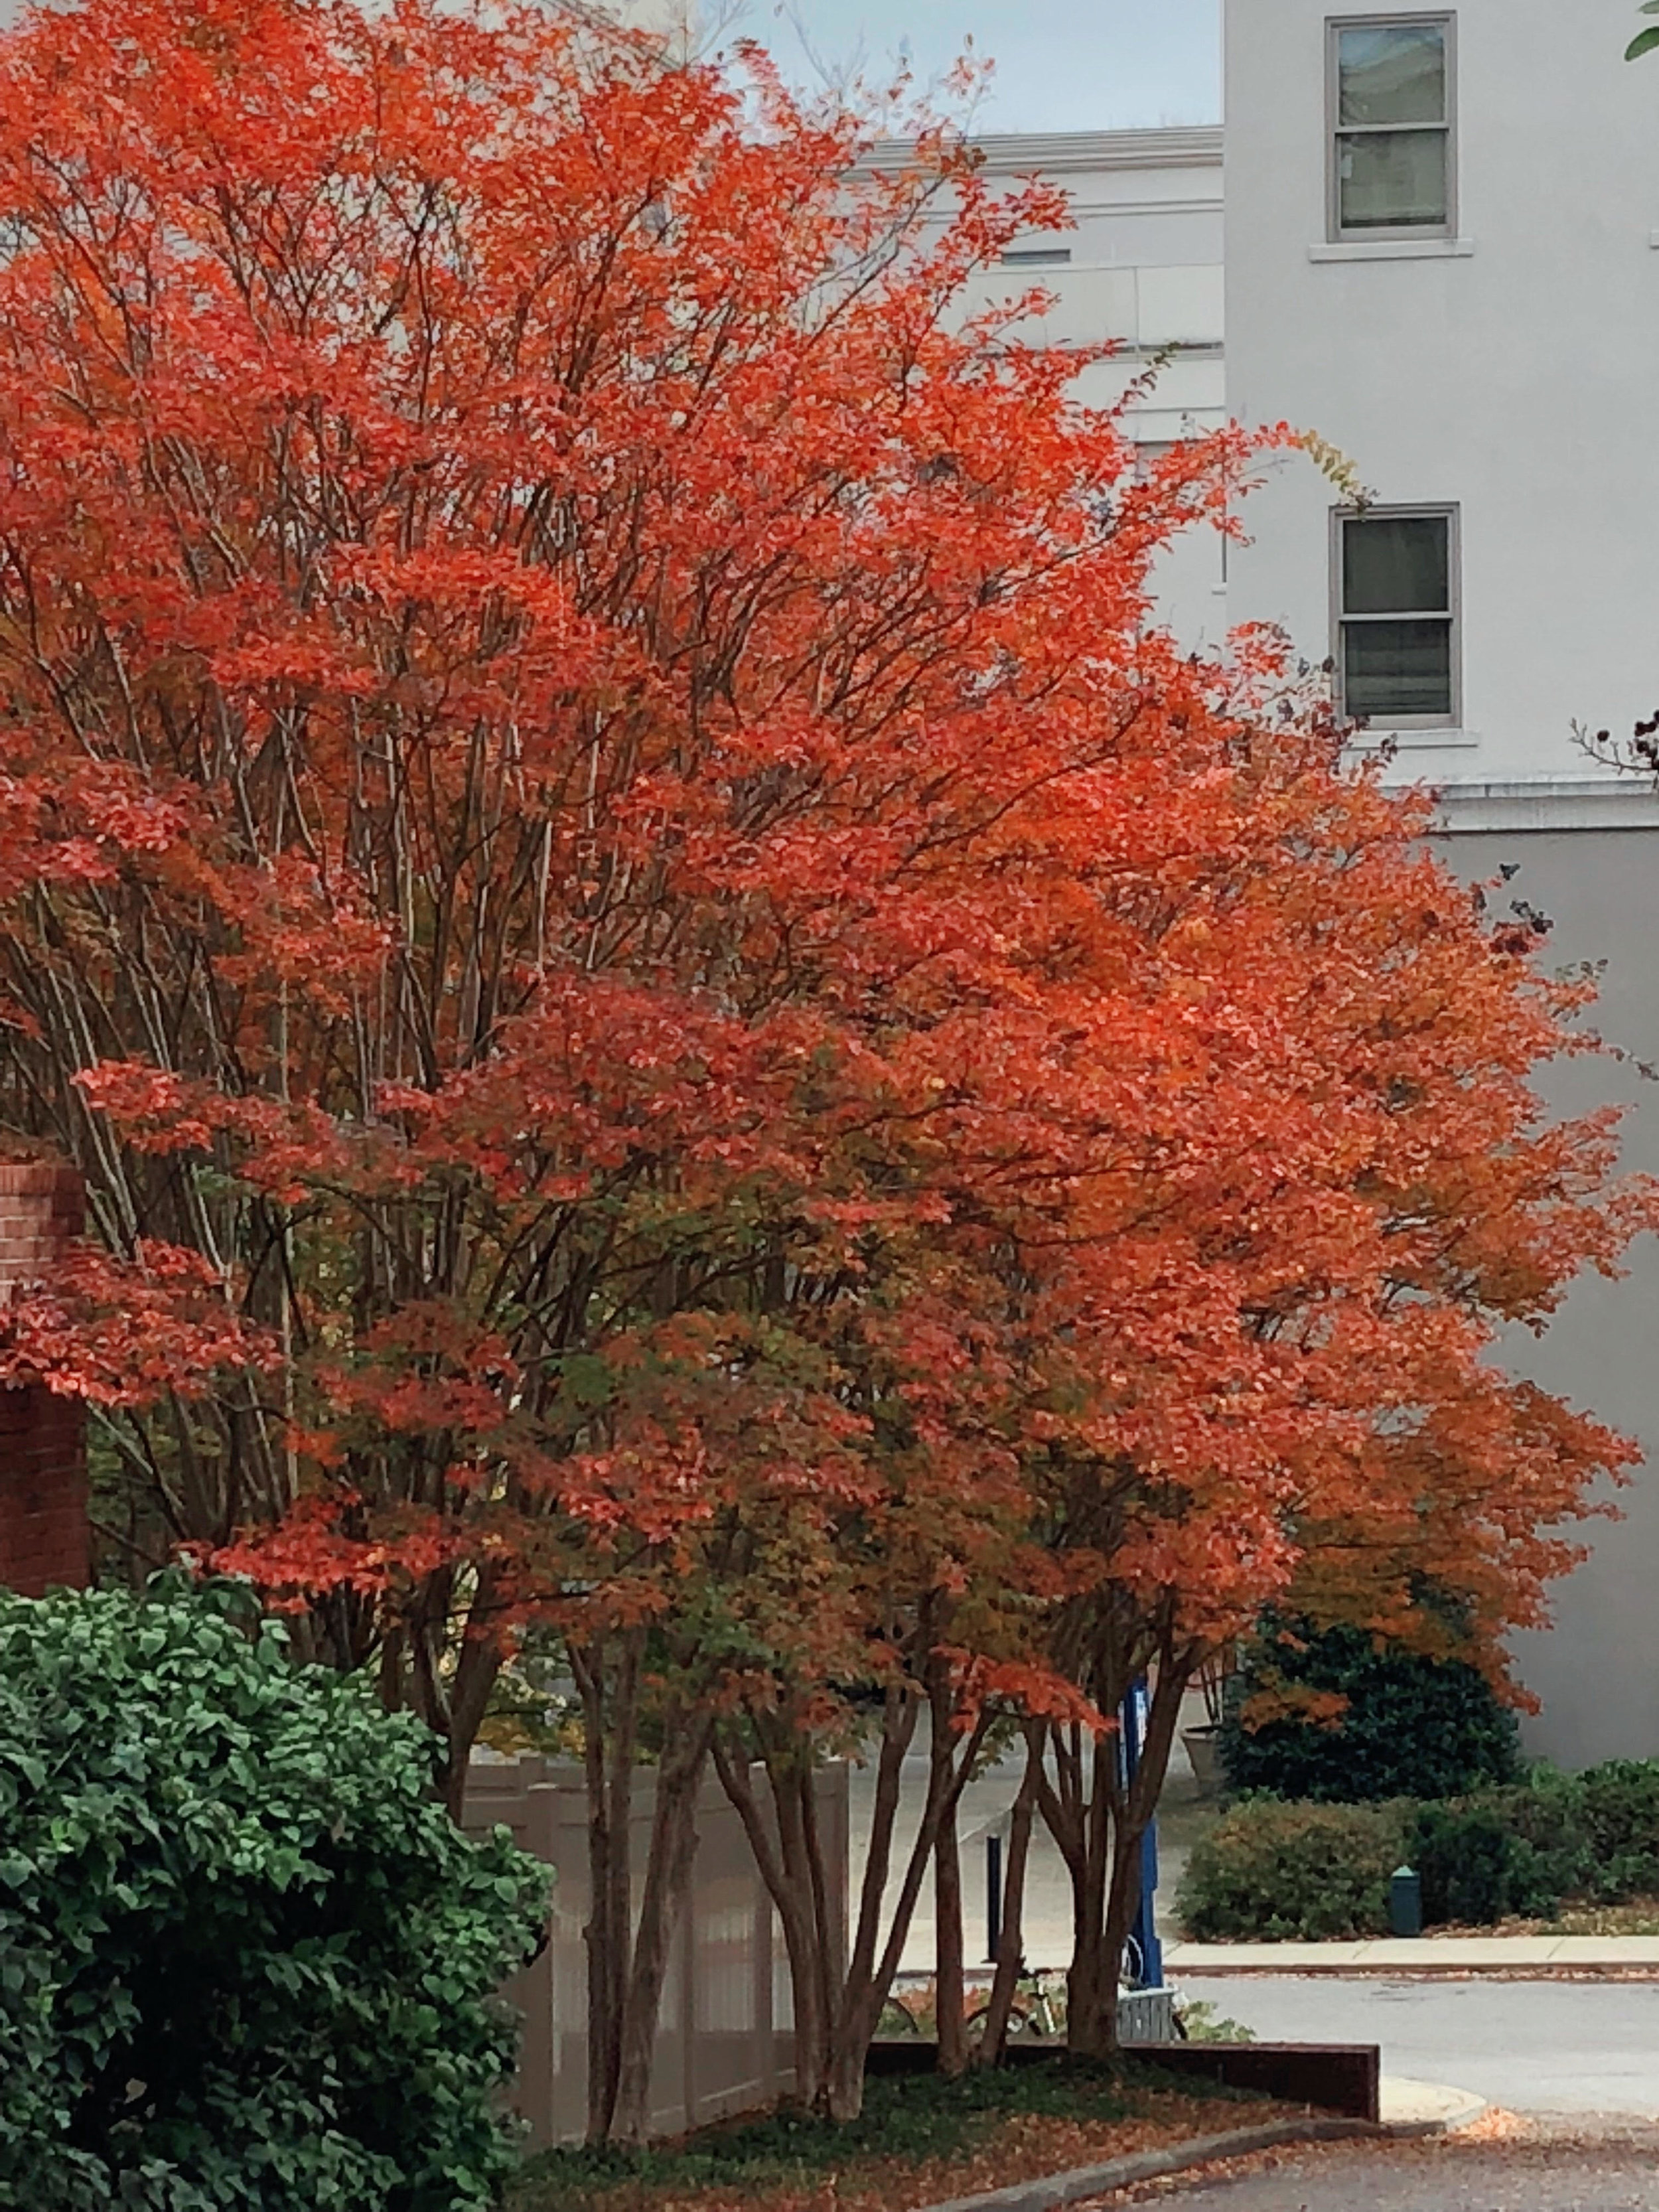 Crape Myrtle Fall Color  – Another overlooked characteristic of the plant is the fall color. Varieties range from yellow to red. Much of our fall color is found in larger trees. Crape myrtles add fall color to the landscape below the color of the large trees.